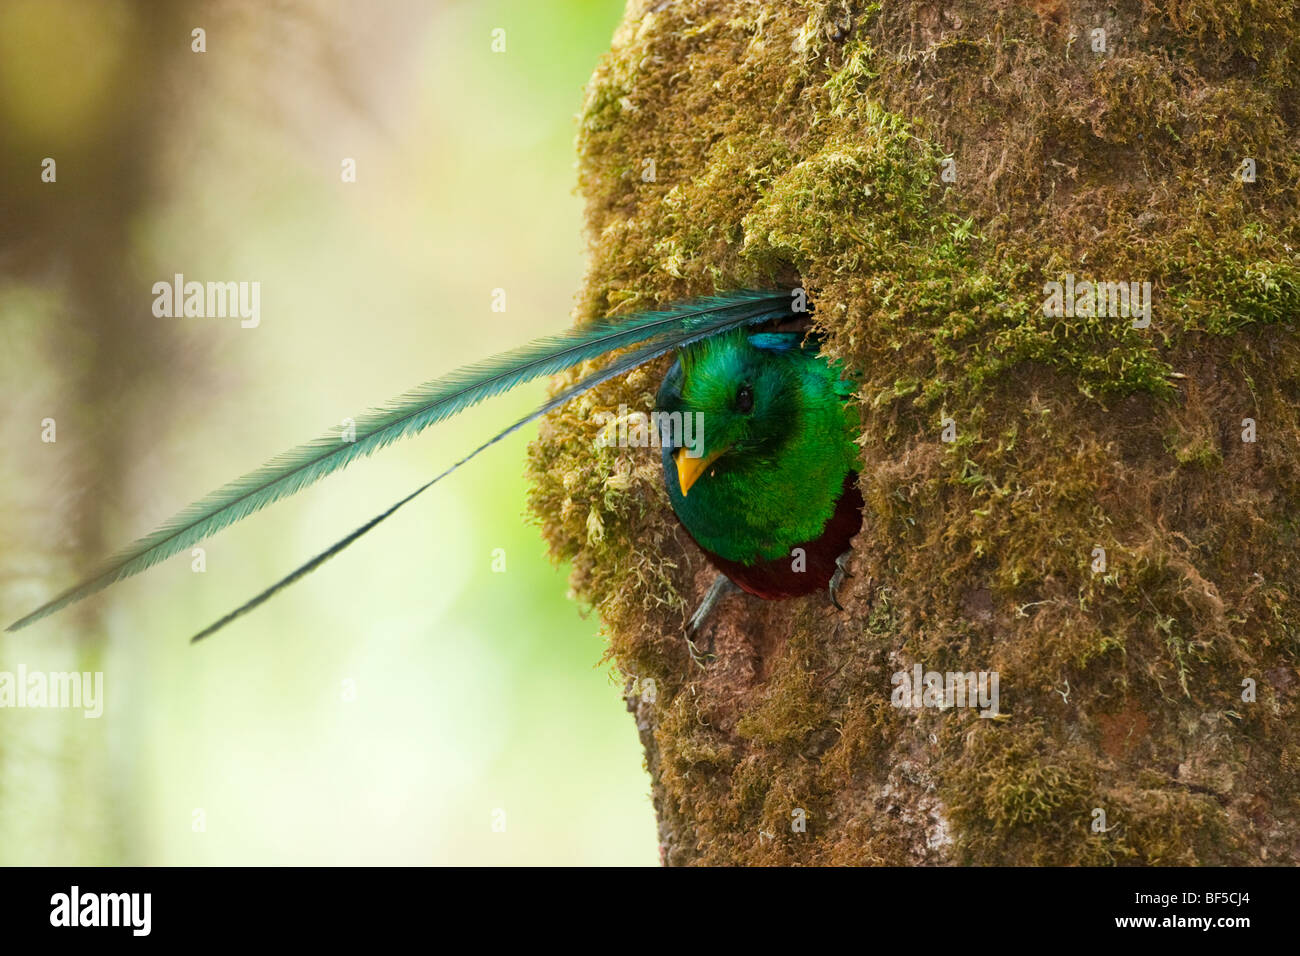 Male resplendent quetzal in its nest tree in Costa Rica. - Stock Image